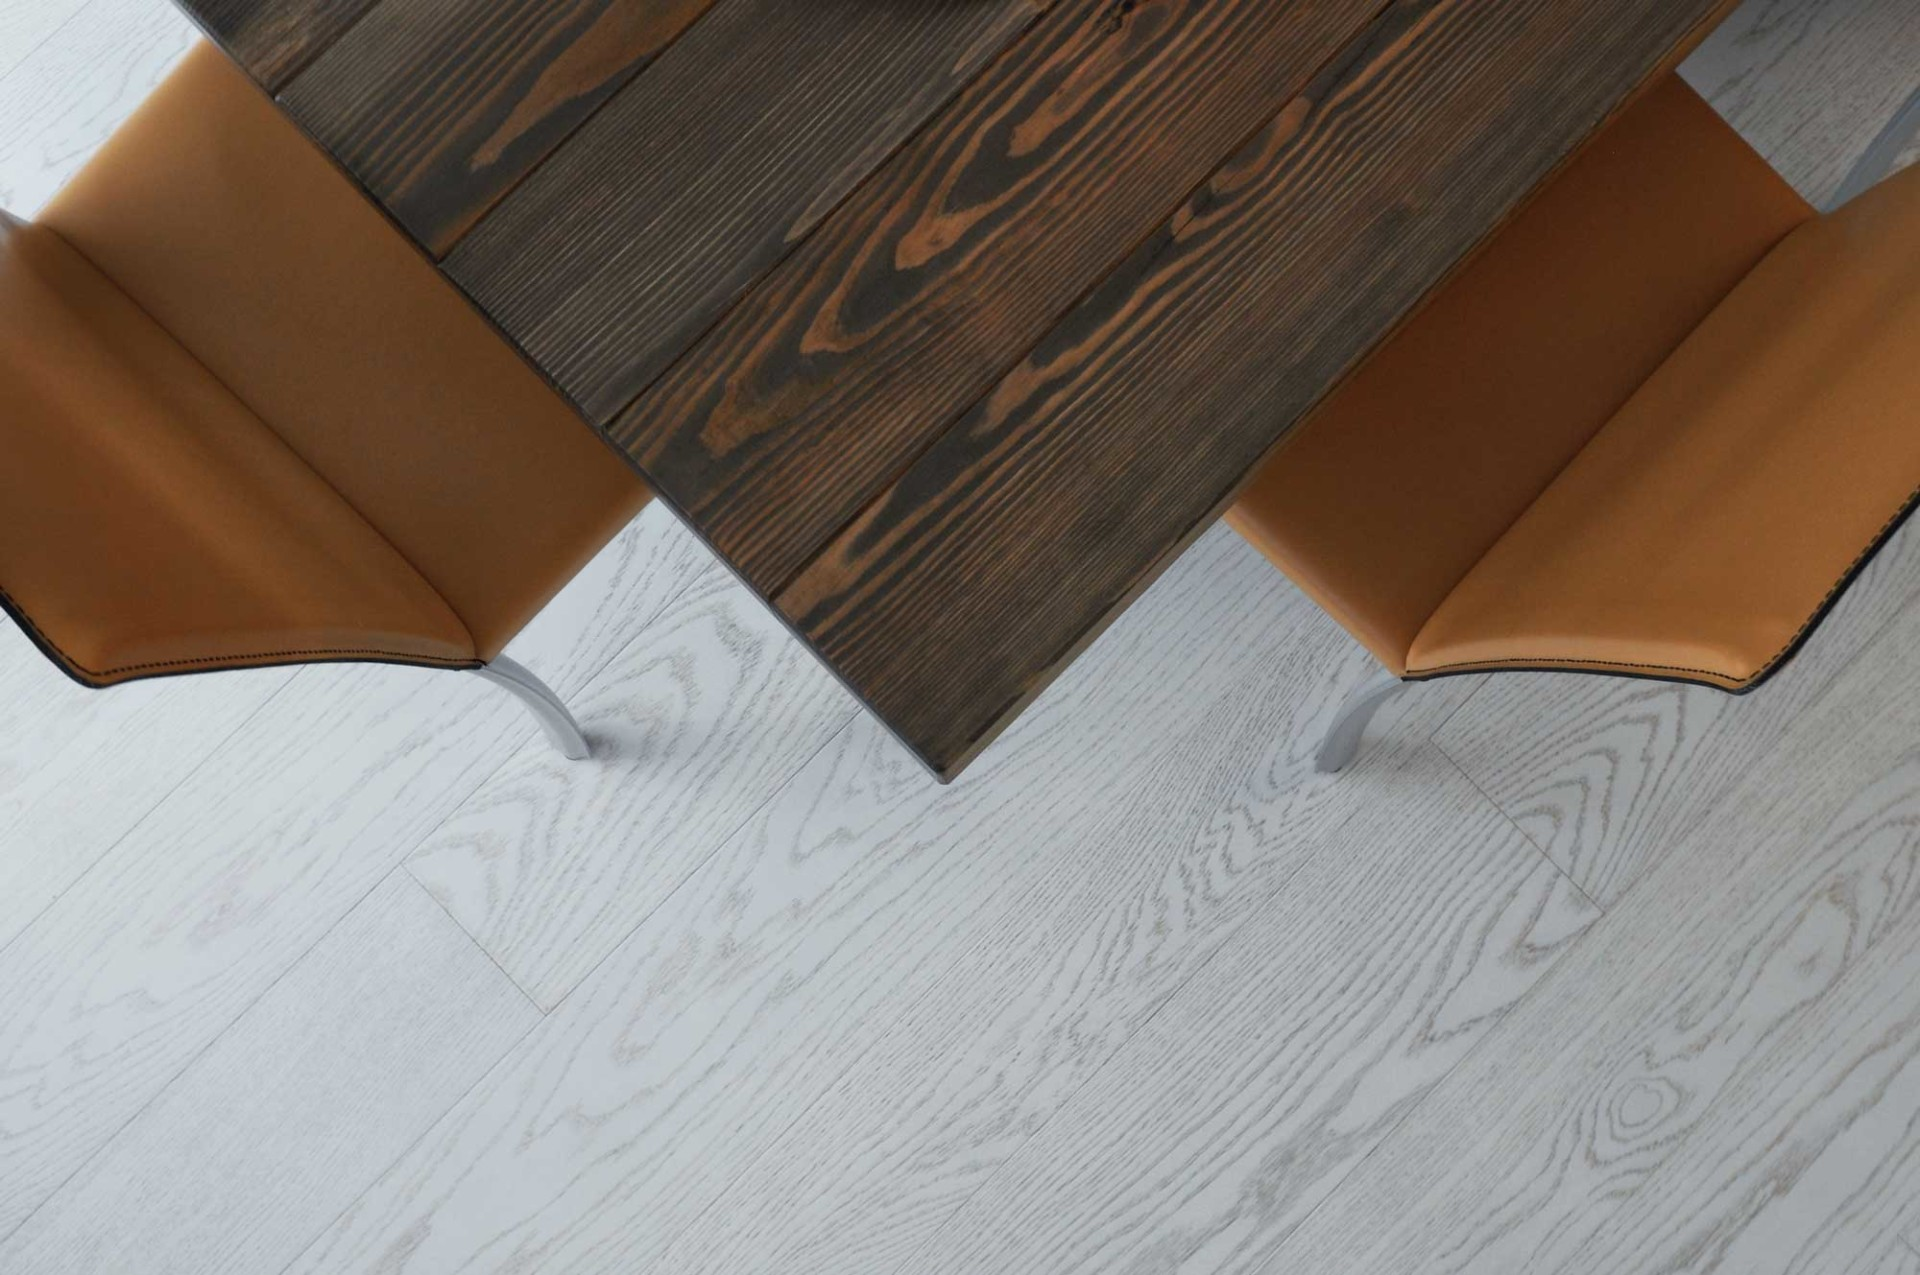 Simmetric corners, a mix of leather and wood materials